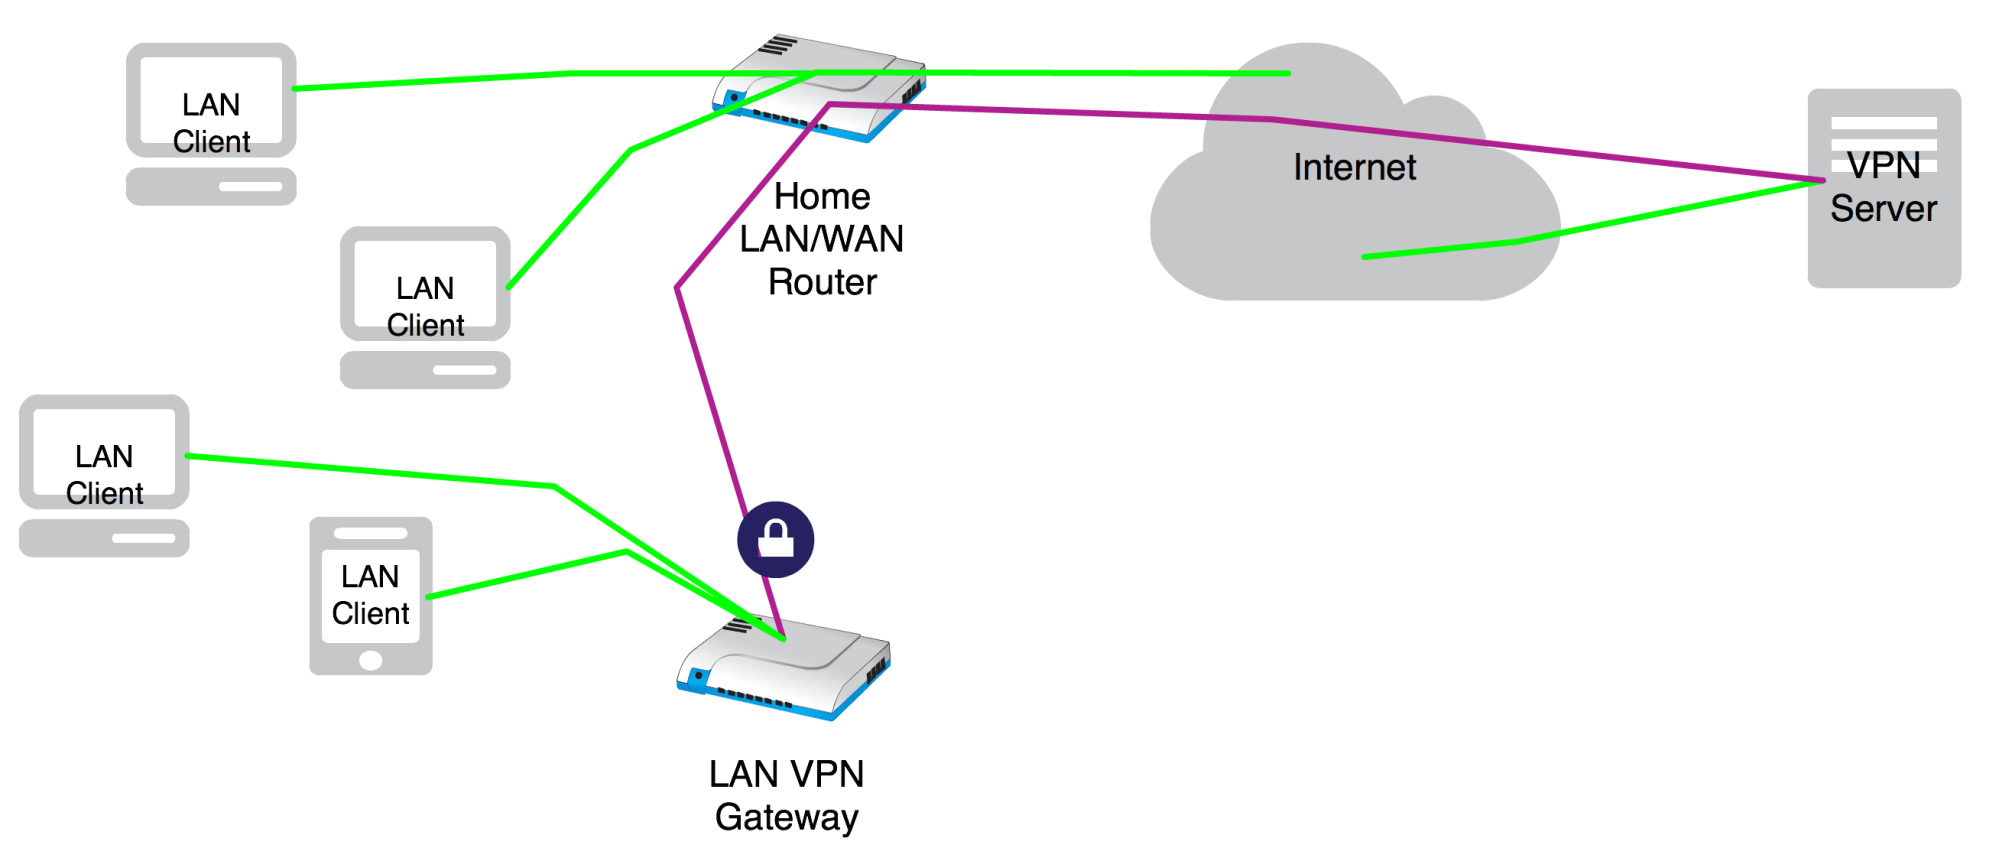 hight resolution of i wanted to be able to choose on a per device basis which devices will route their traffic unencrypted to my isp and which devices will get their traffic